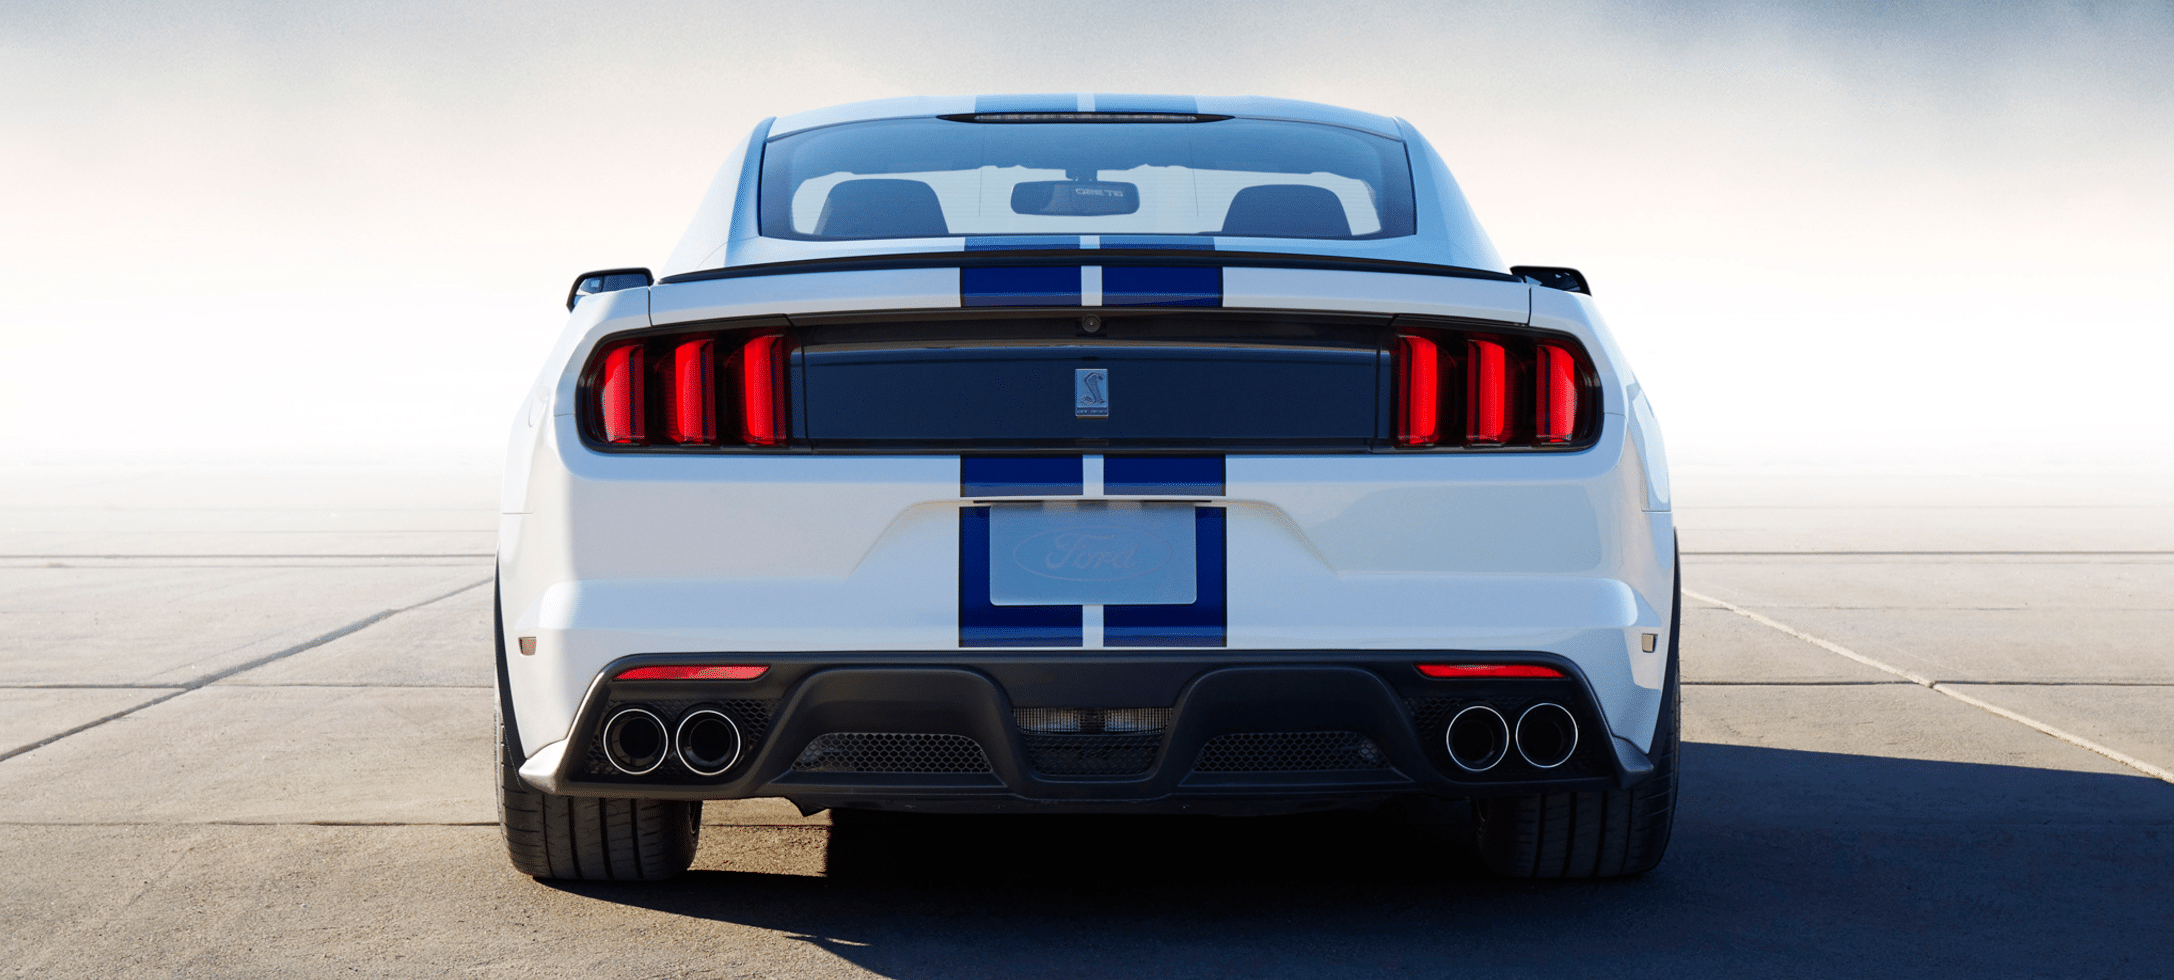 Best Exhaust Brands